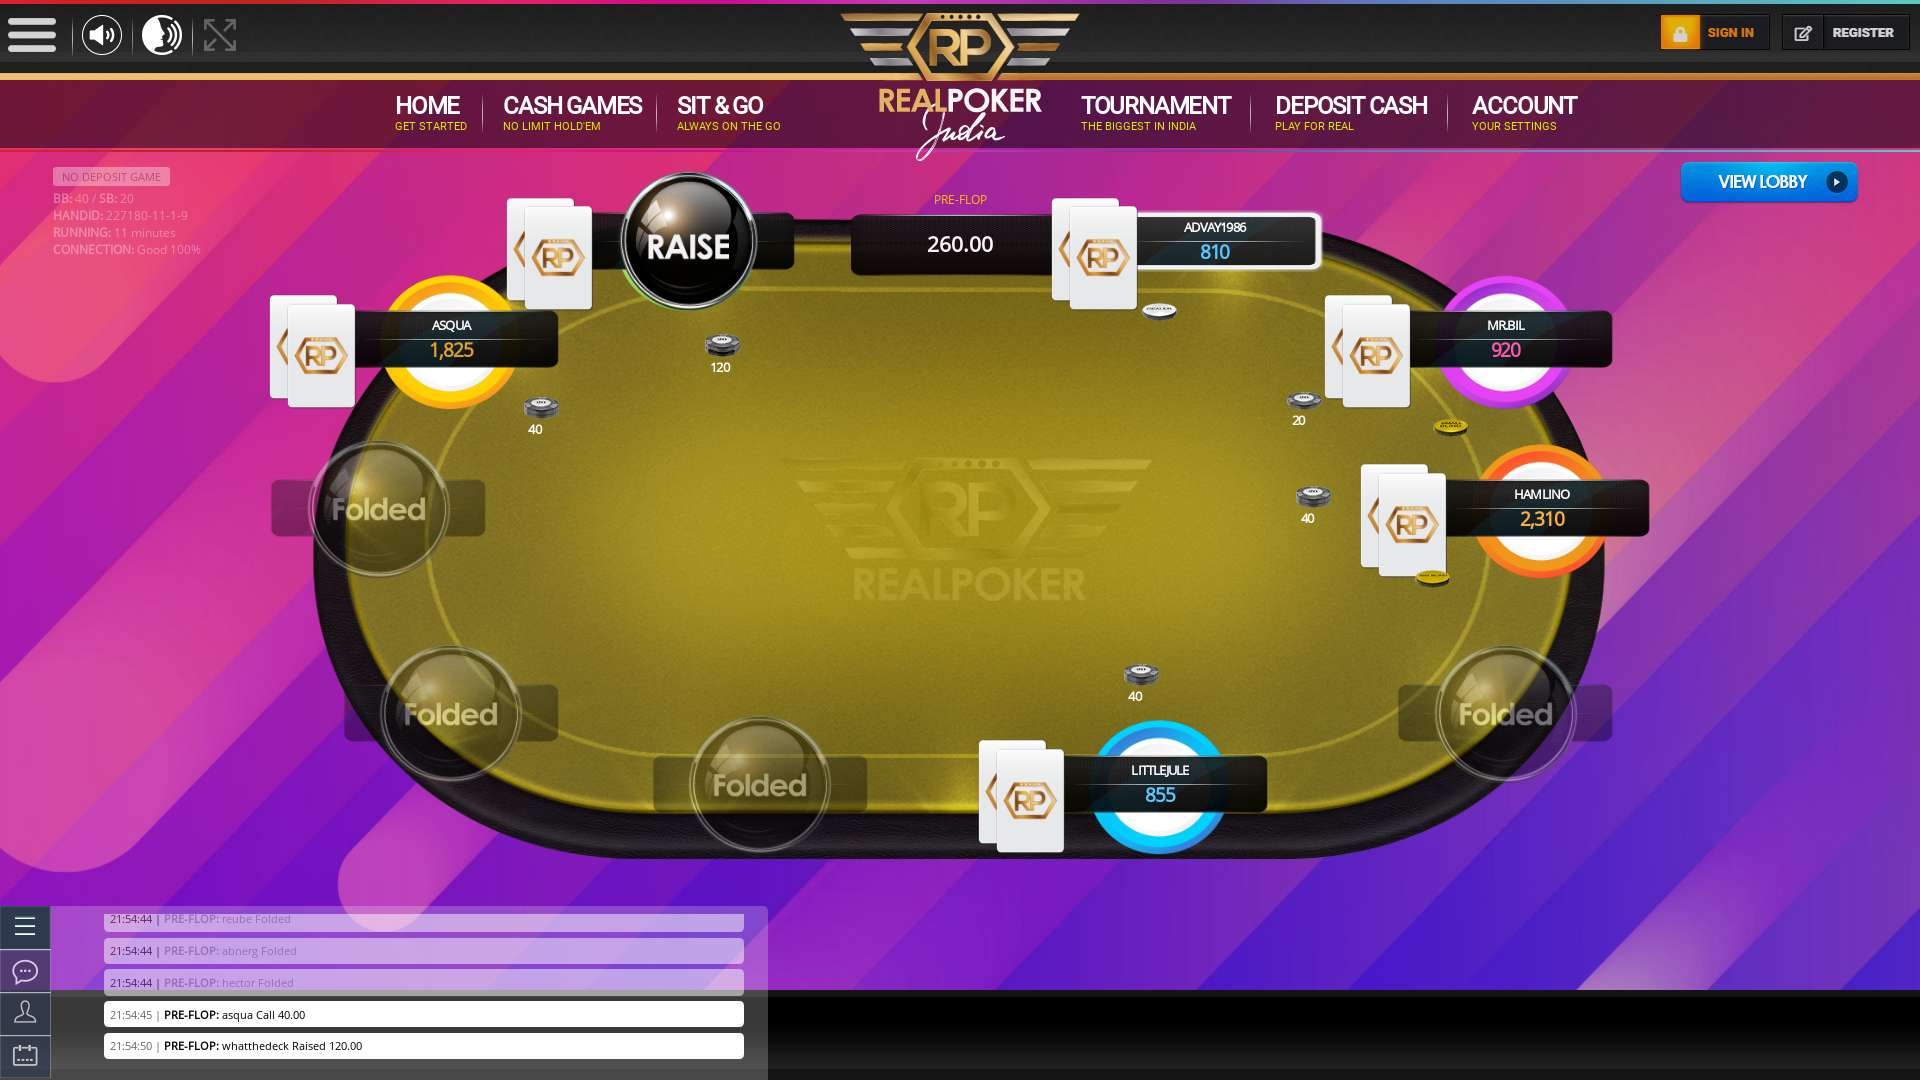 Real Indian poker on a 10 player table in the 10th minute of the game